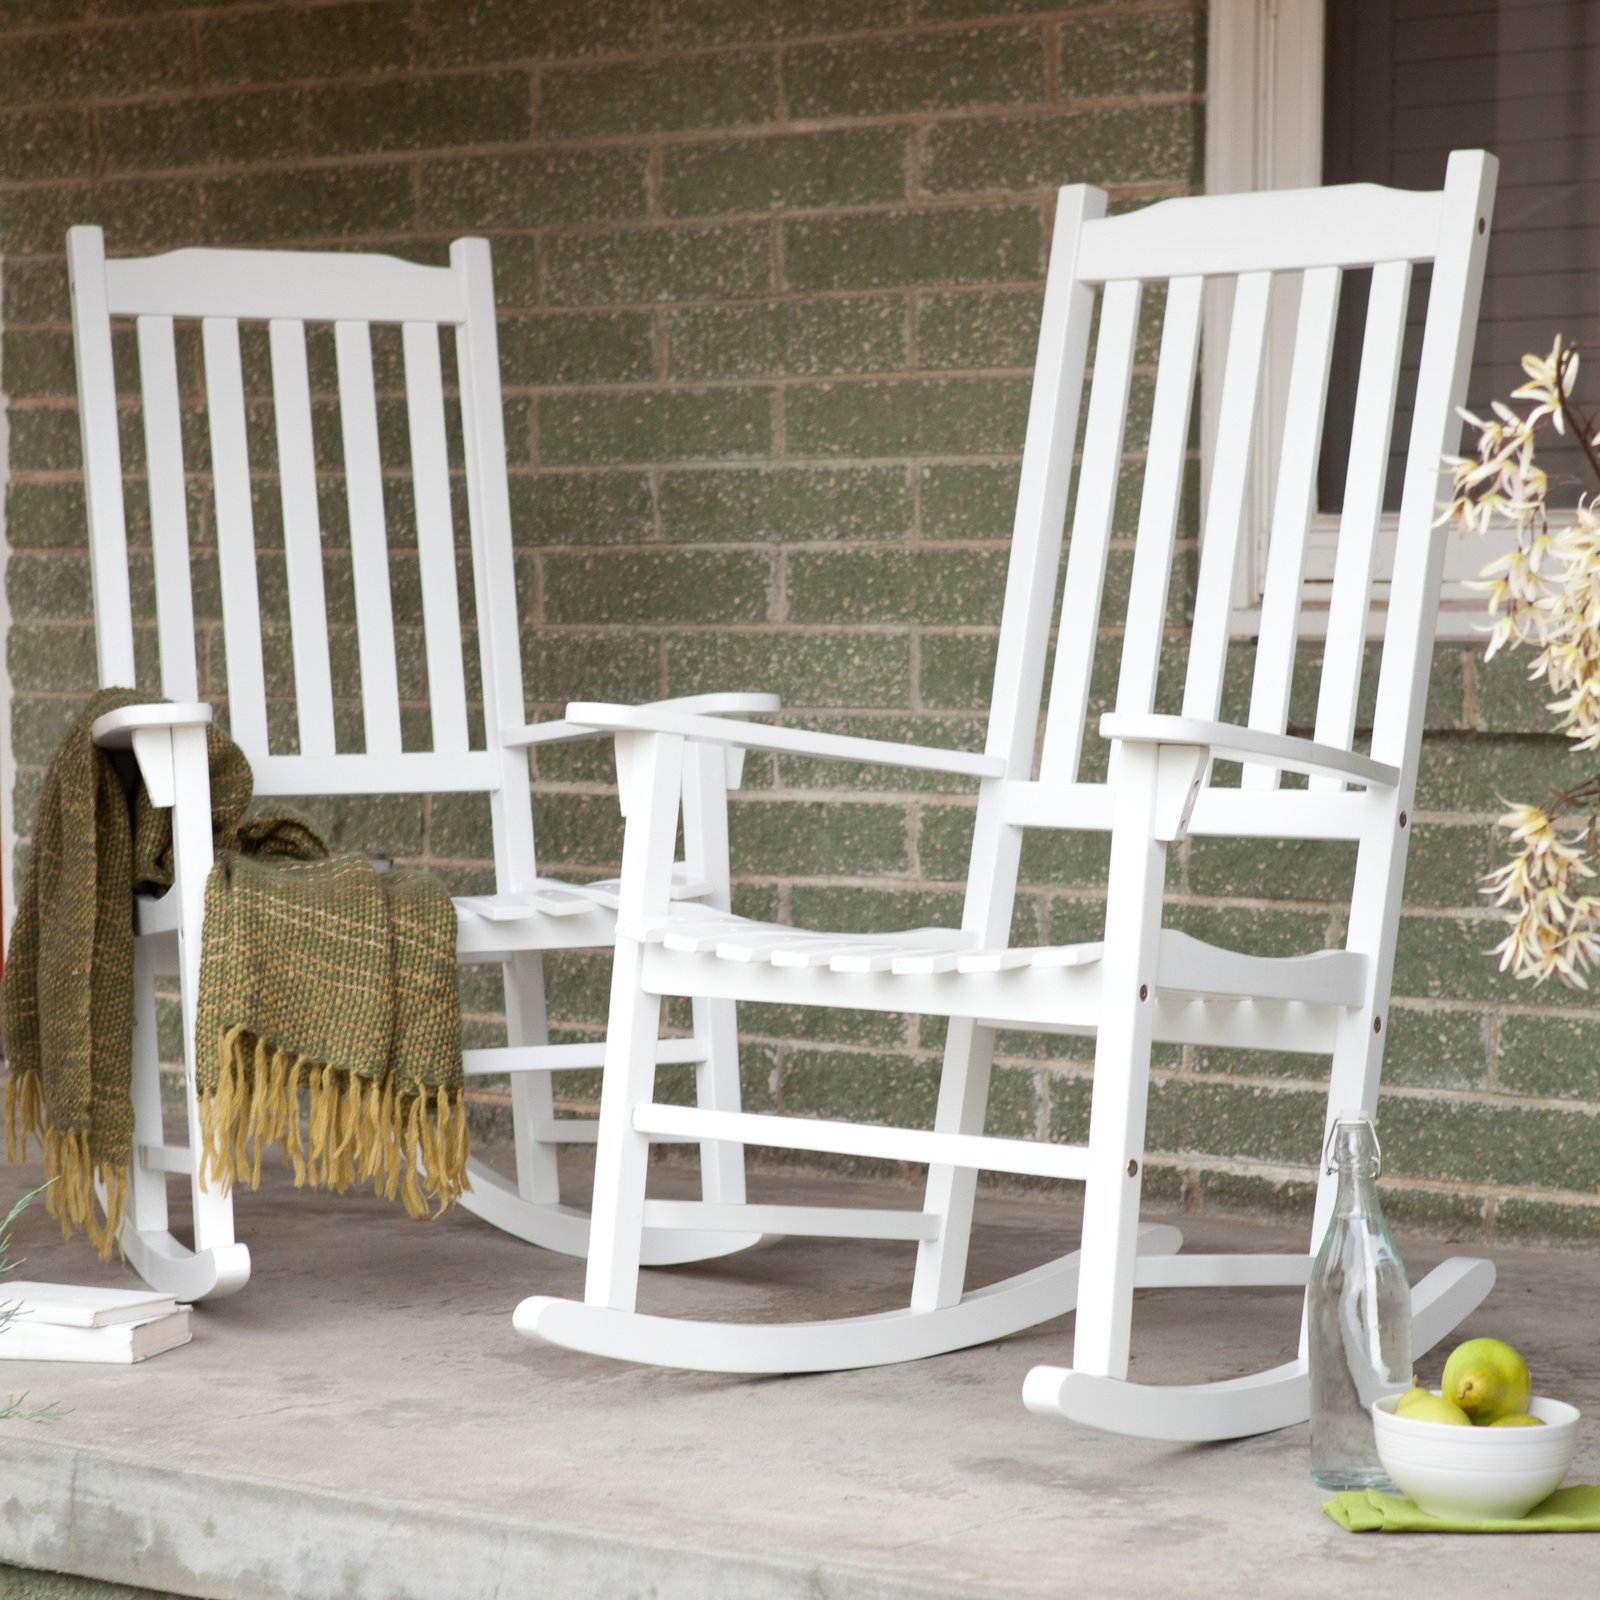 Wooden Rocking Chairs Home Indoor Outdoor Living Room Porch White Wood ...